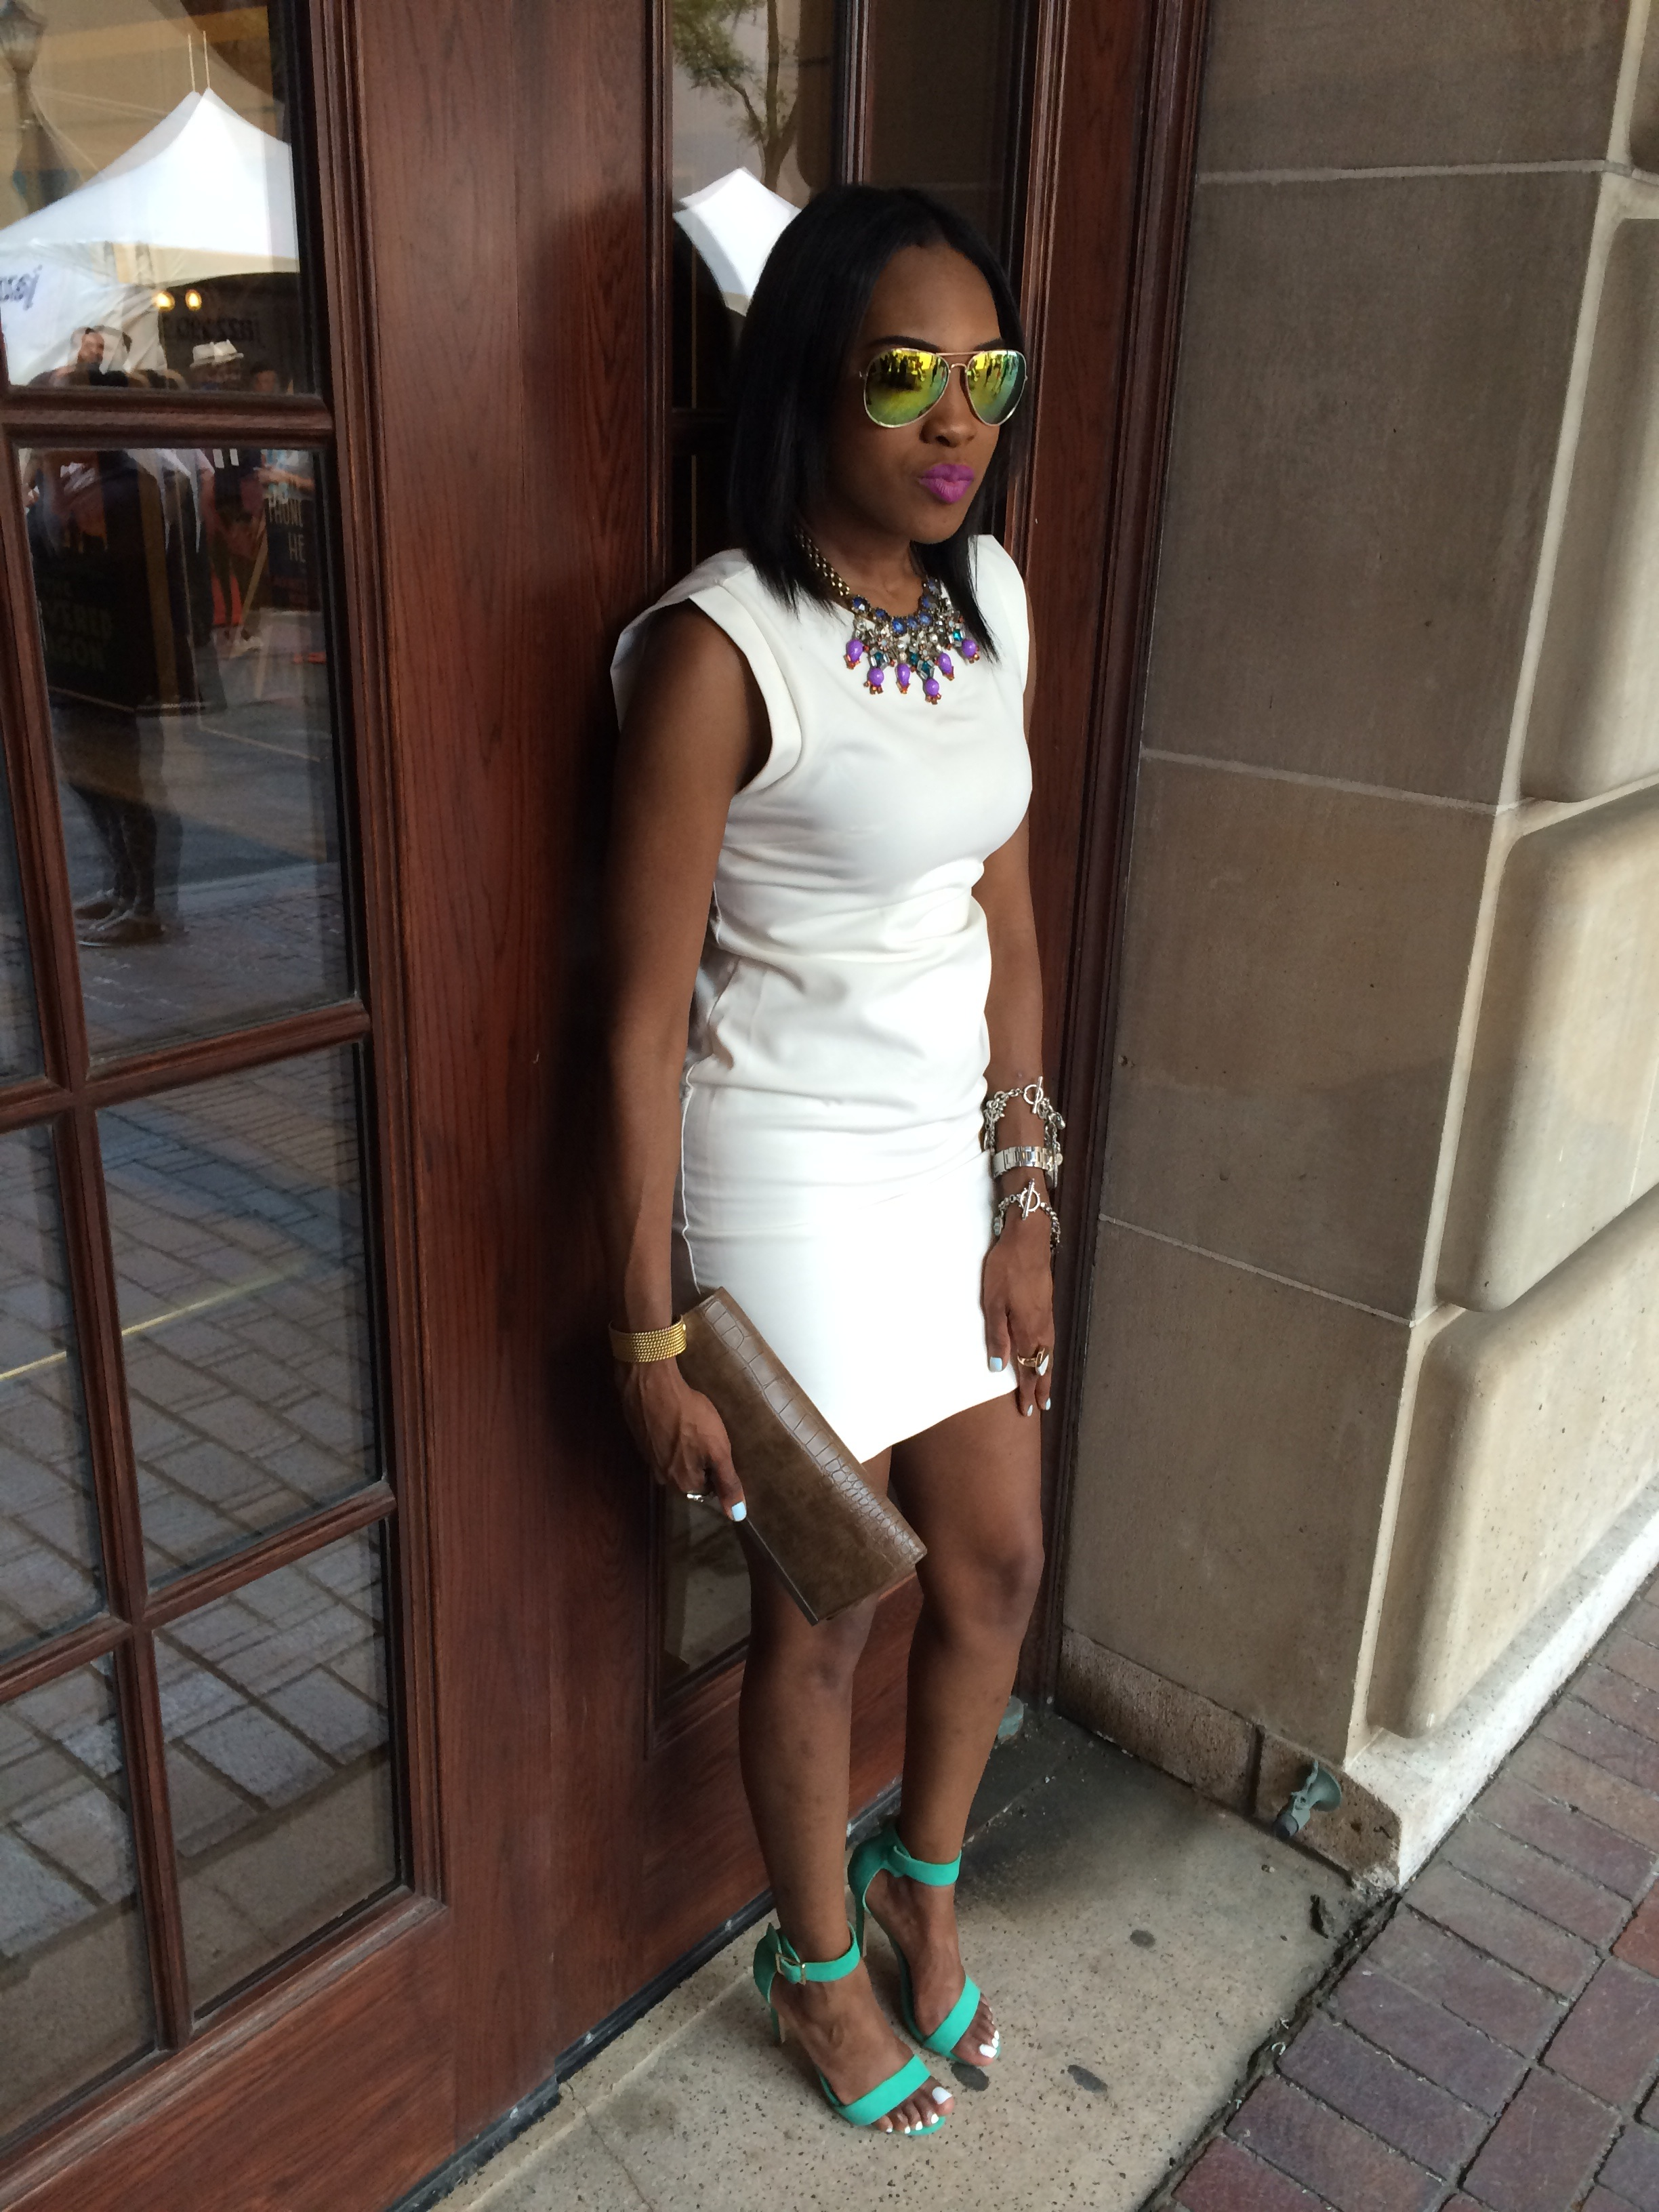 Style-files-white-one-clothing-sheath-dress-just-fab-Paean-seamfoam-mint-green-ankle-strap-sandals-forever-21-white-ruffled-coat-forever-21-mirrored-tint-sunglasses-birthday-behavior-jday-oohlalablog-2